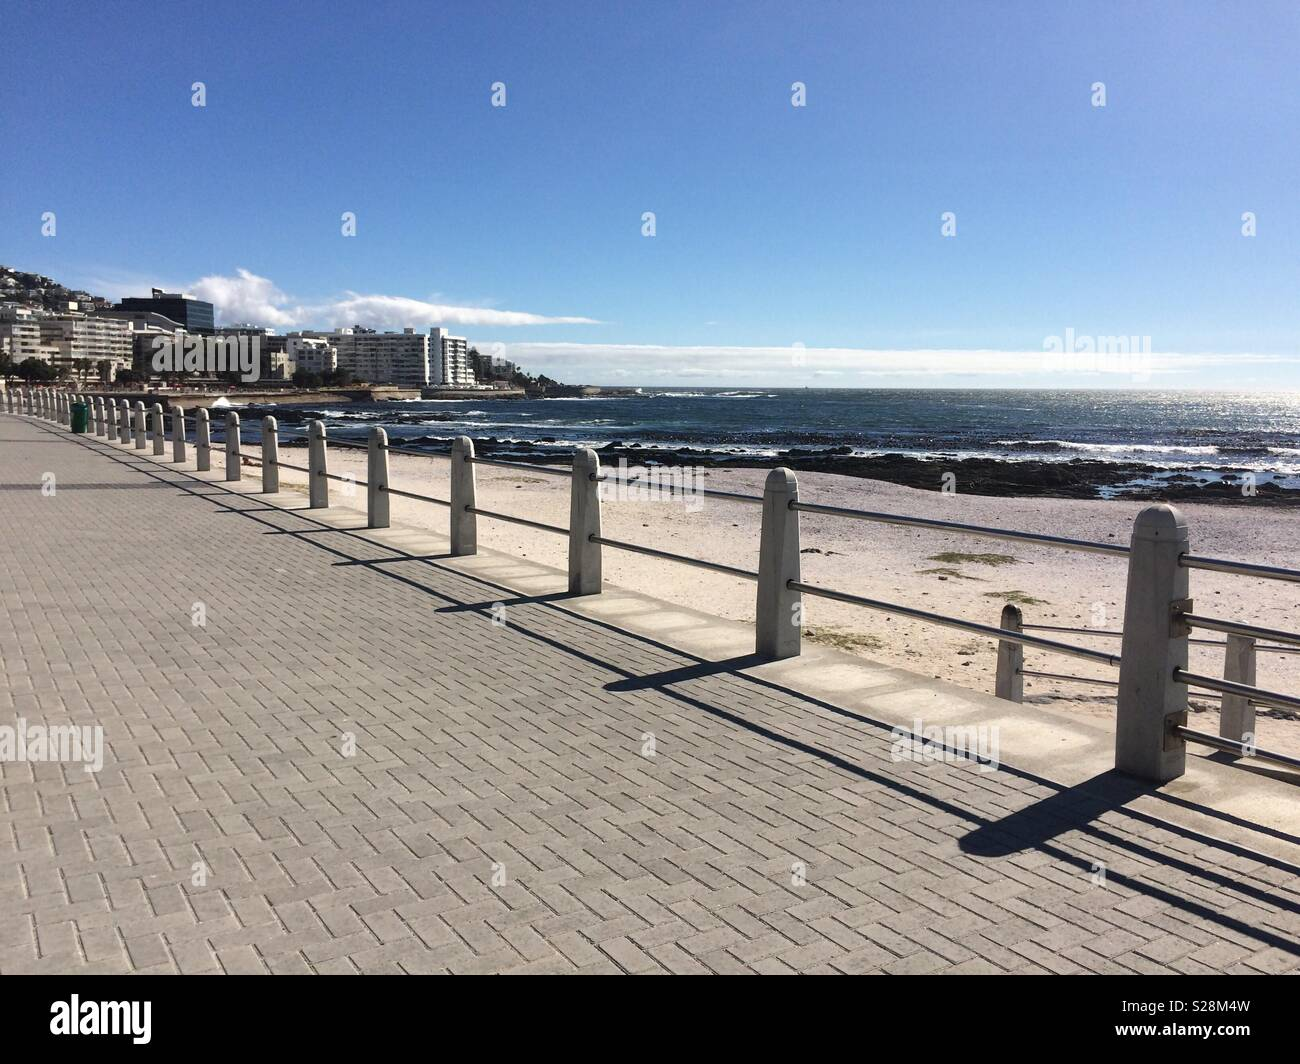 View greenpoint towarards seapoint - Stock Image